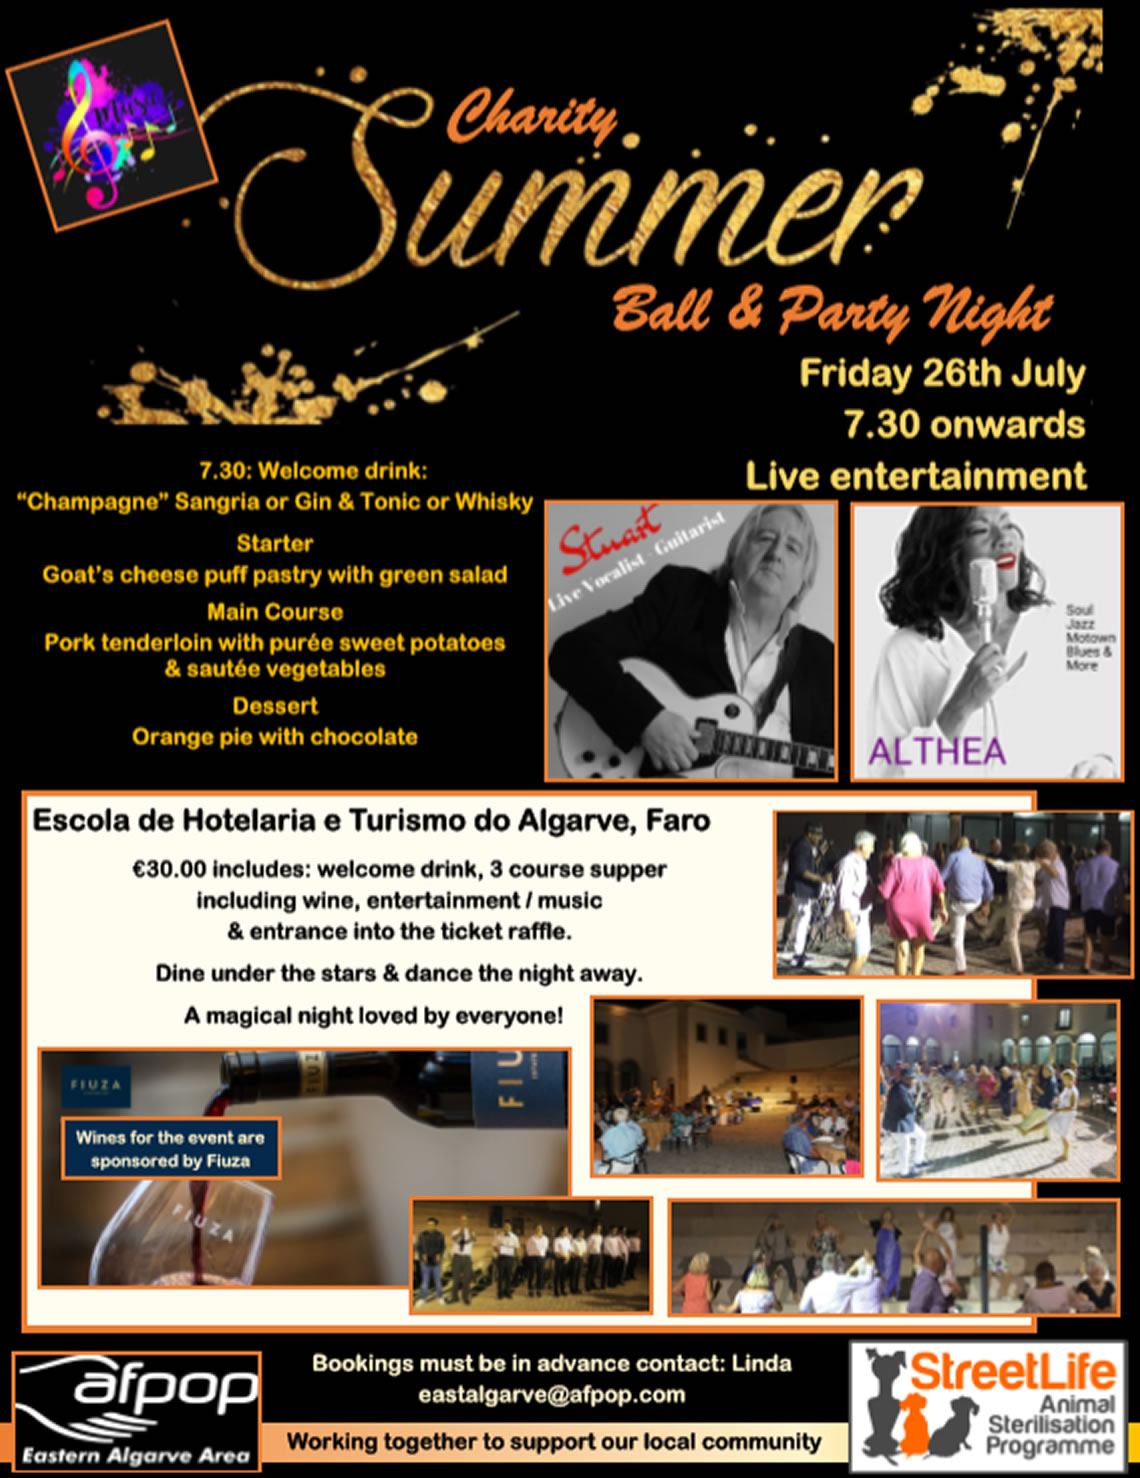 Charity Summer Ball for StreetLife Animal Sterilisation - July 26th